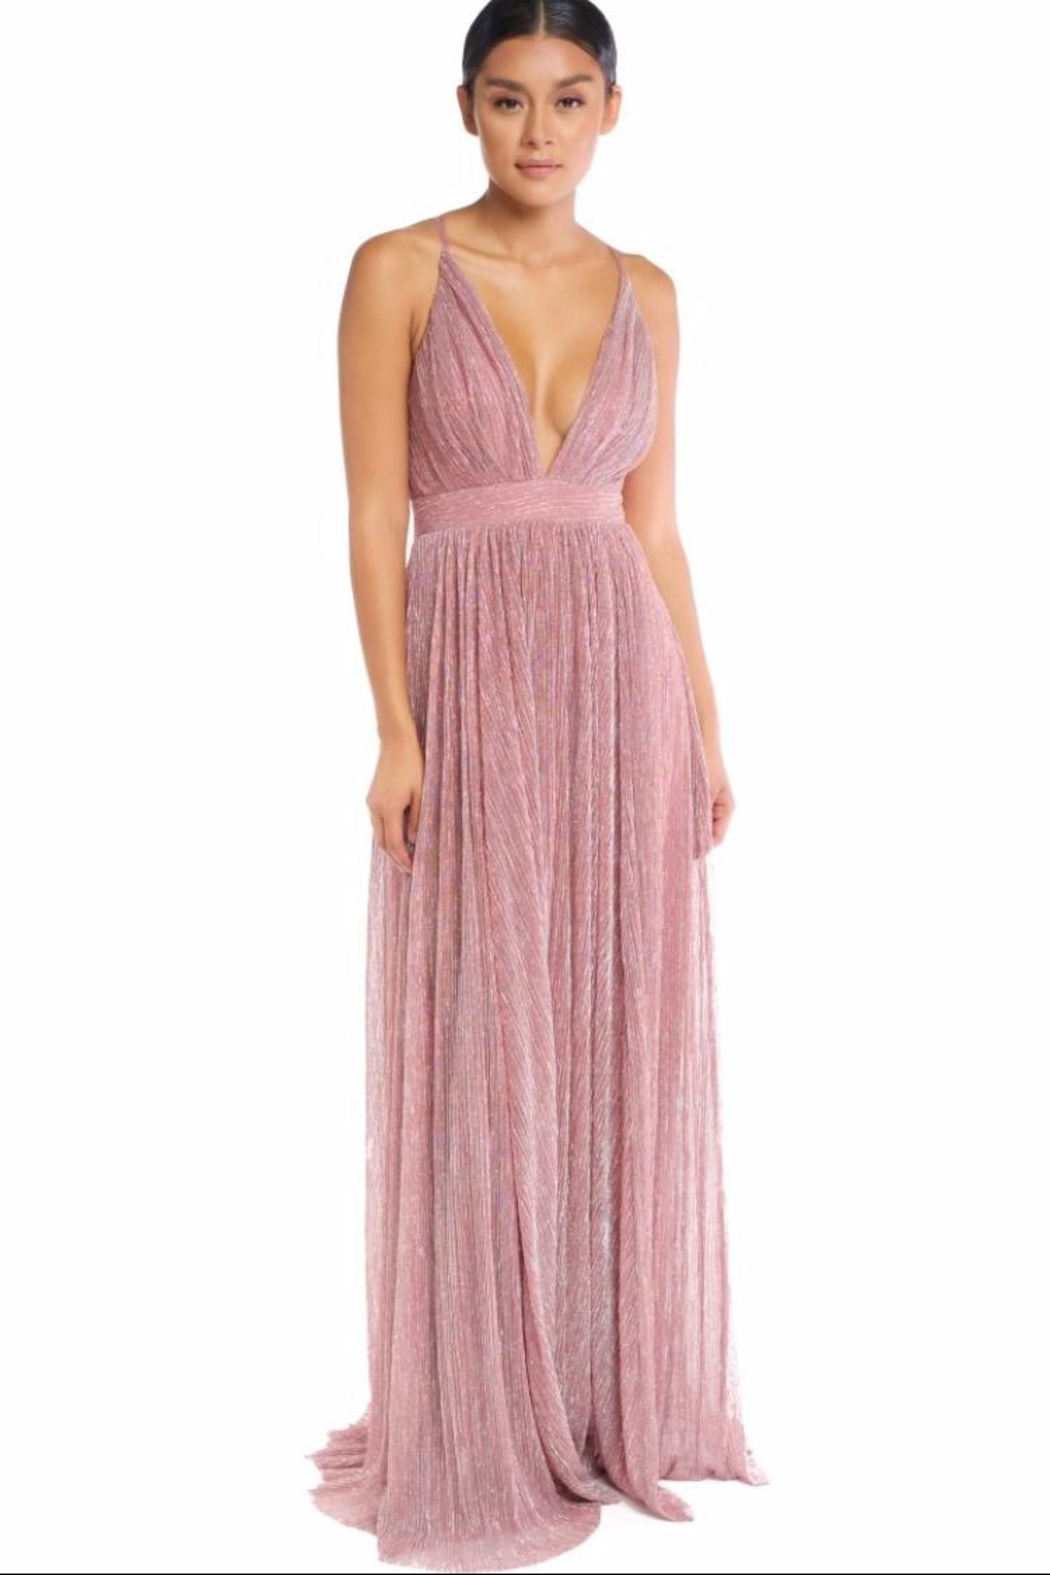 luxxel Electric Echantress Gown from Los Angeles by Chikas — Shoptiques